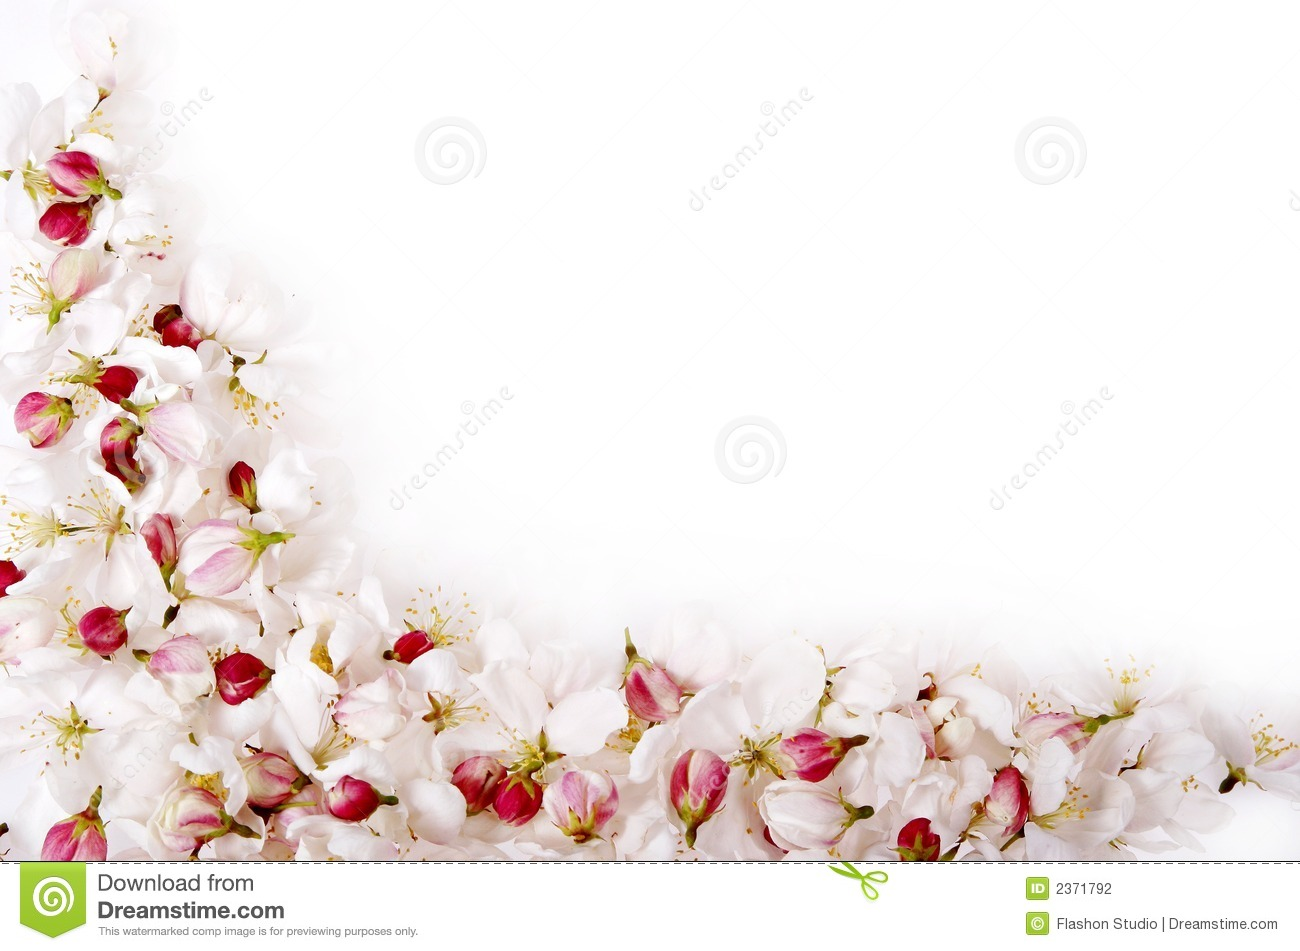 Black And White Girl Wallpaper Drawing Isolated Cherry Blossom Border Stock Photography Image